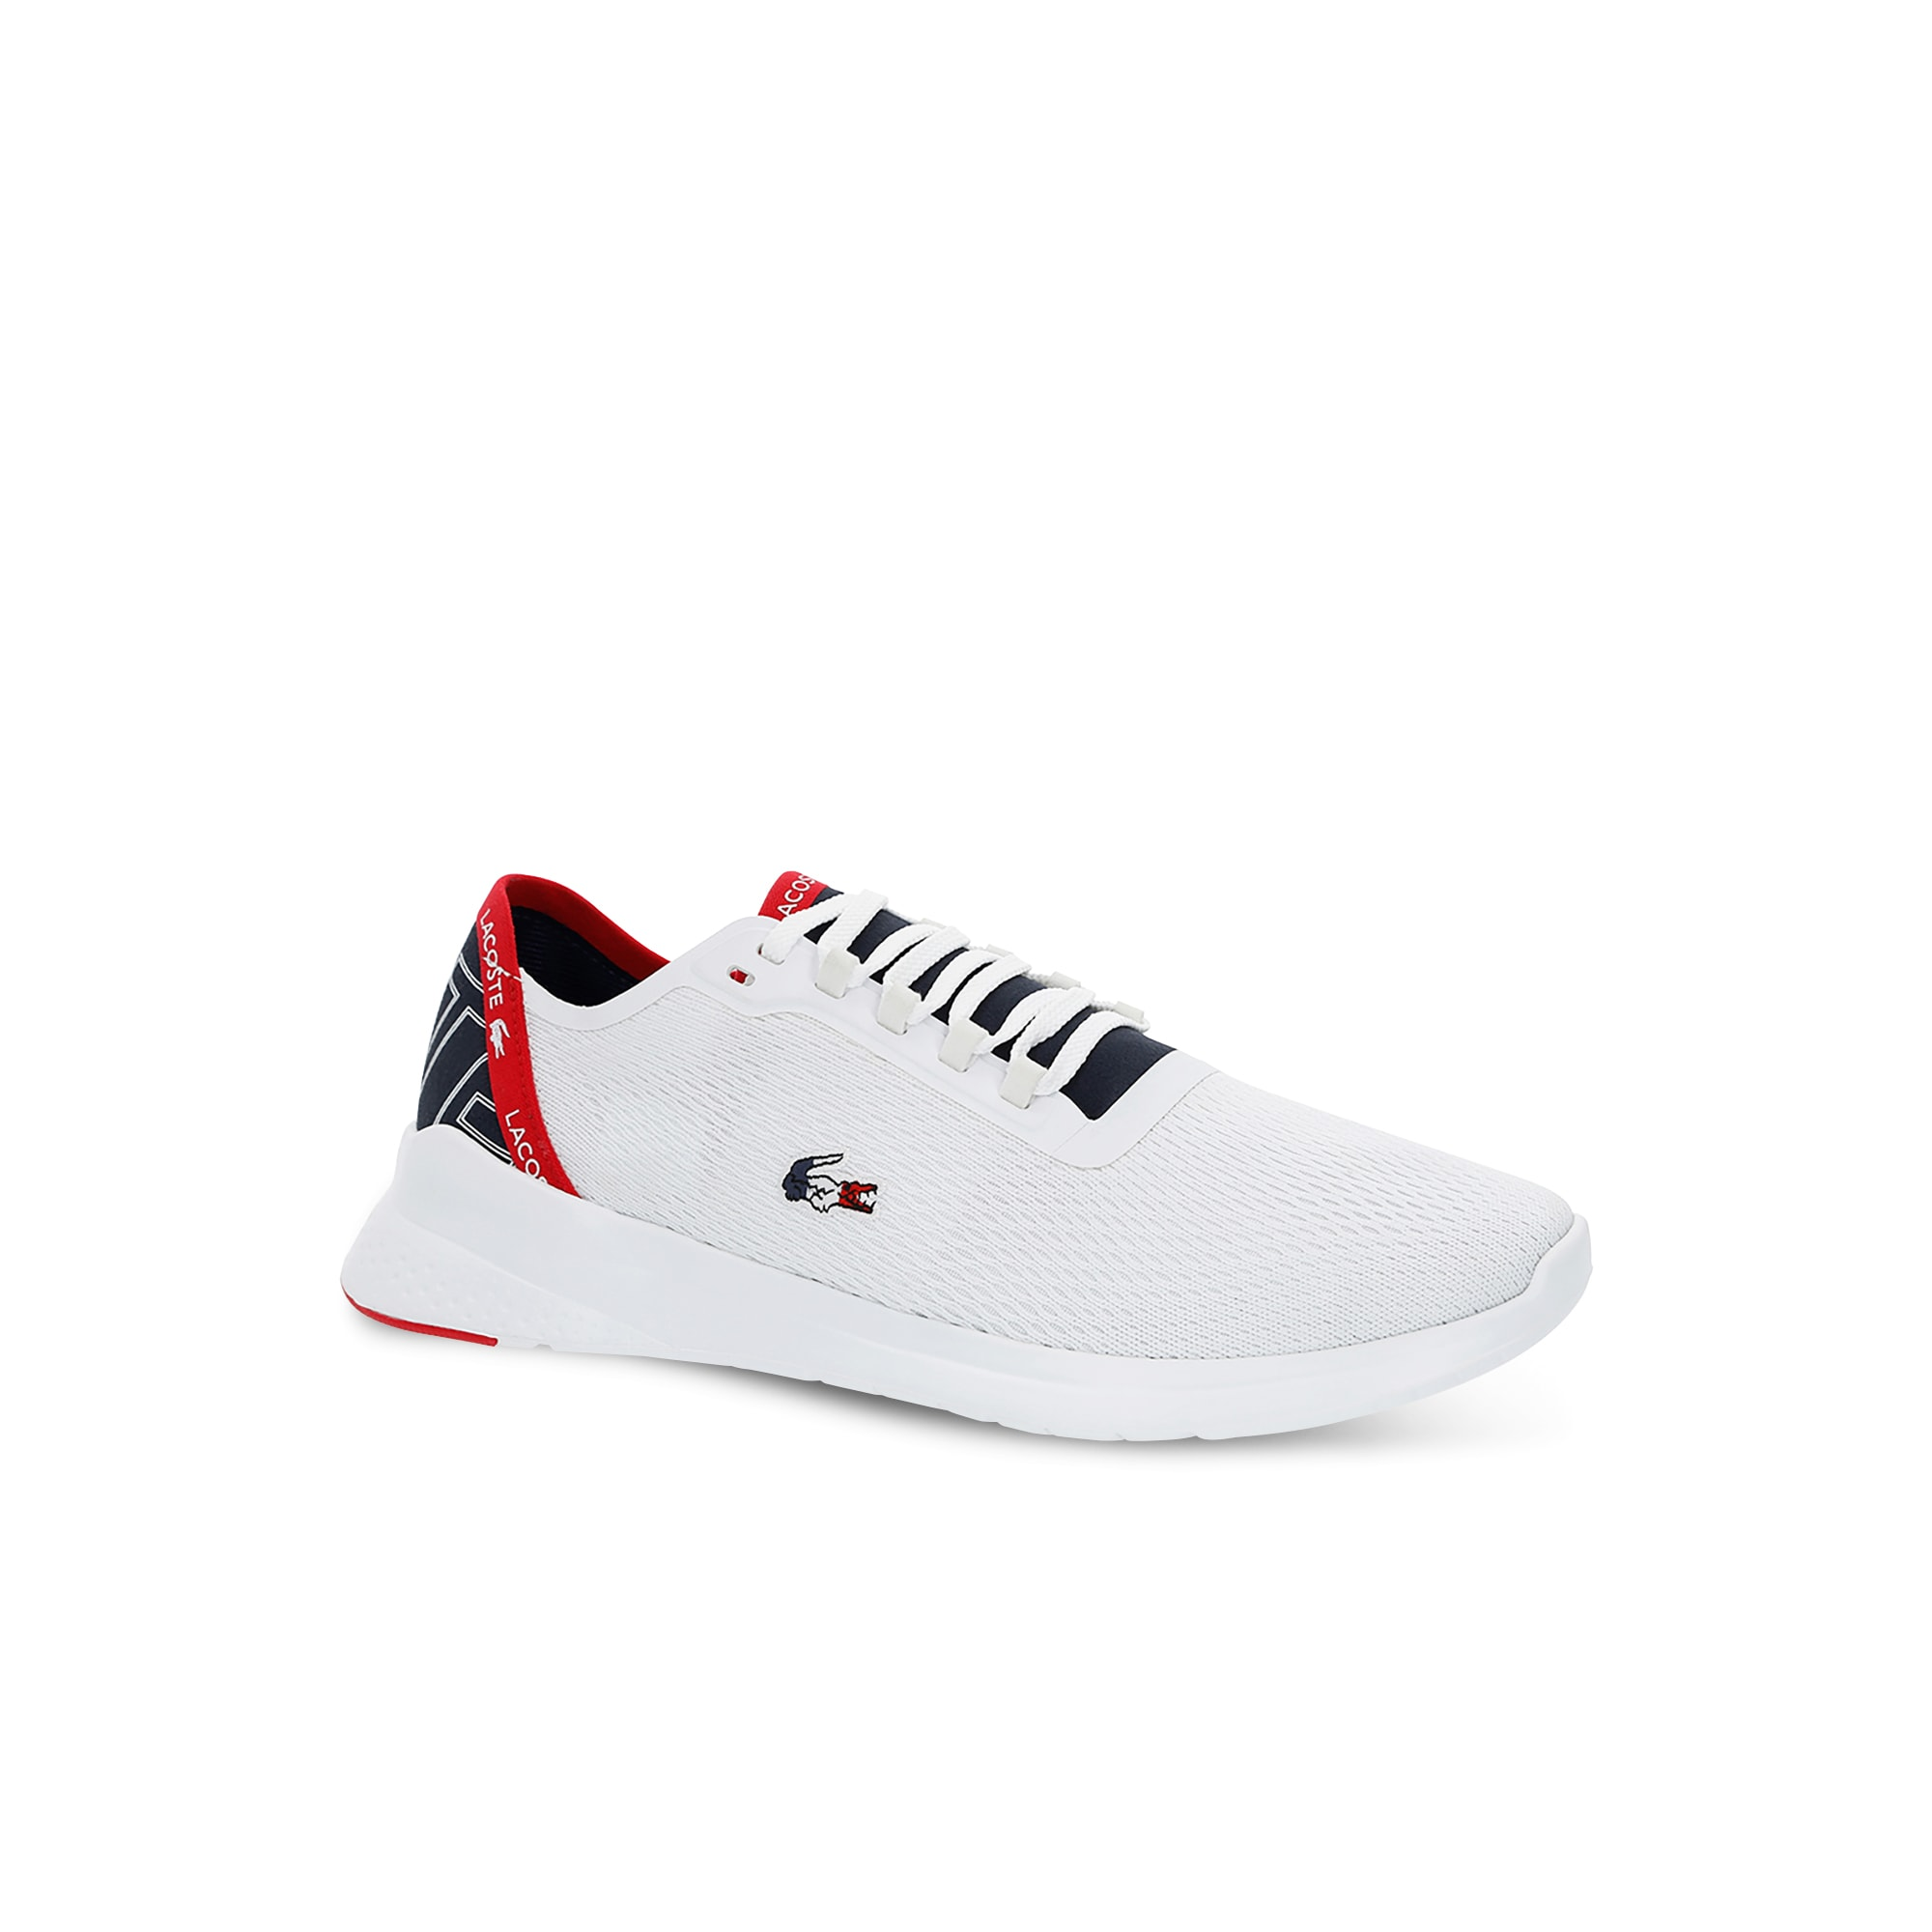 41bb8467bf40b Men s LT Fit Trainers with Tricolour Croc